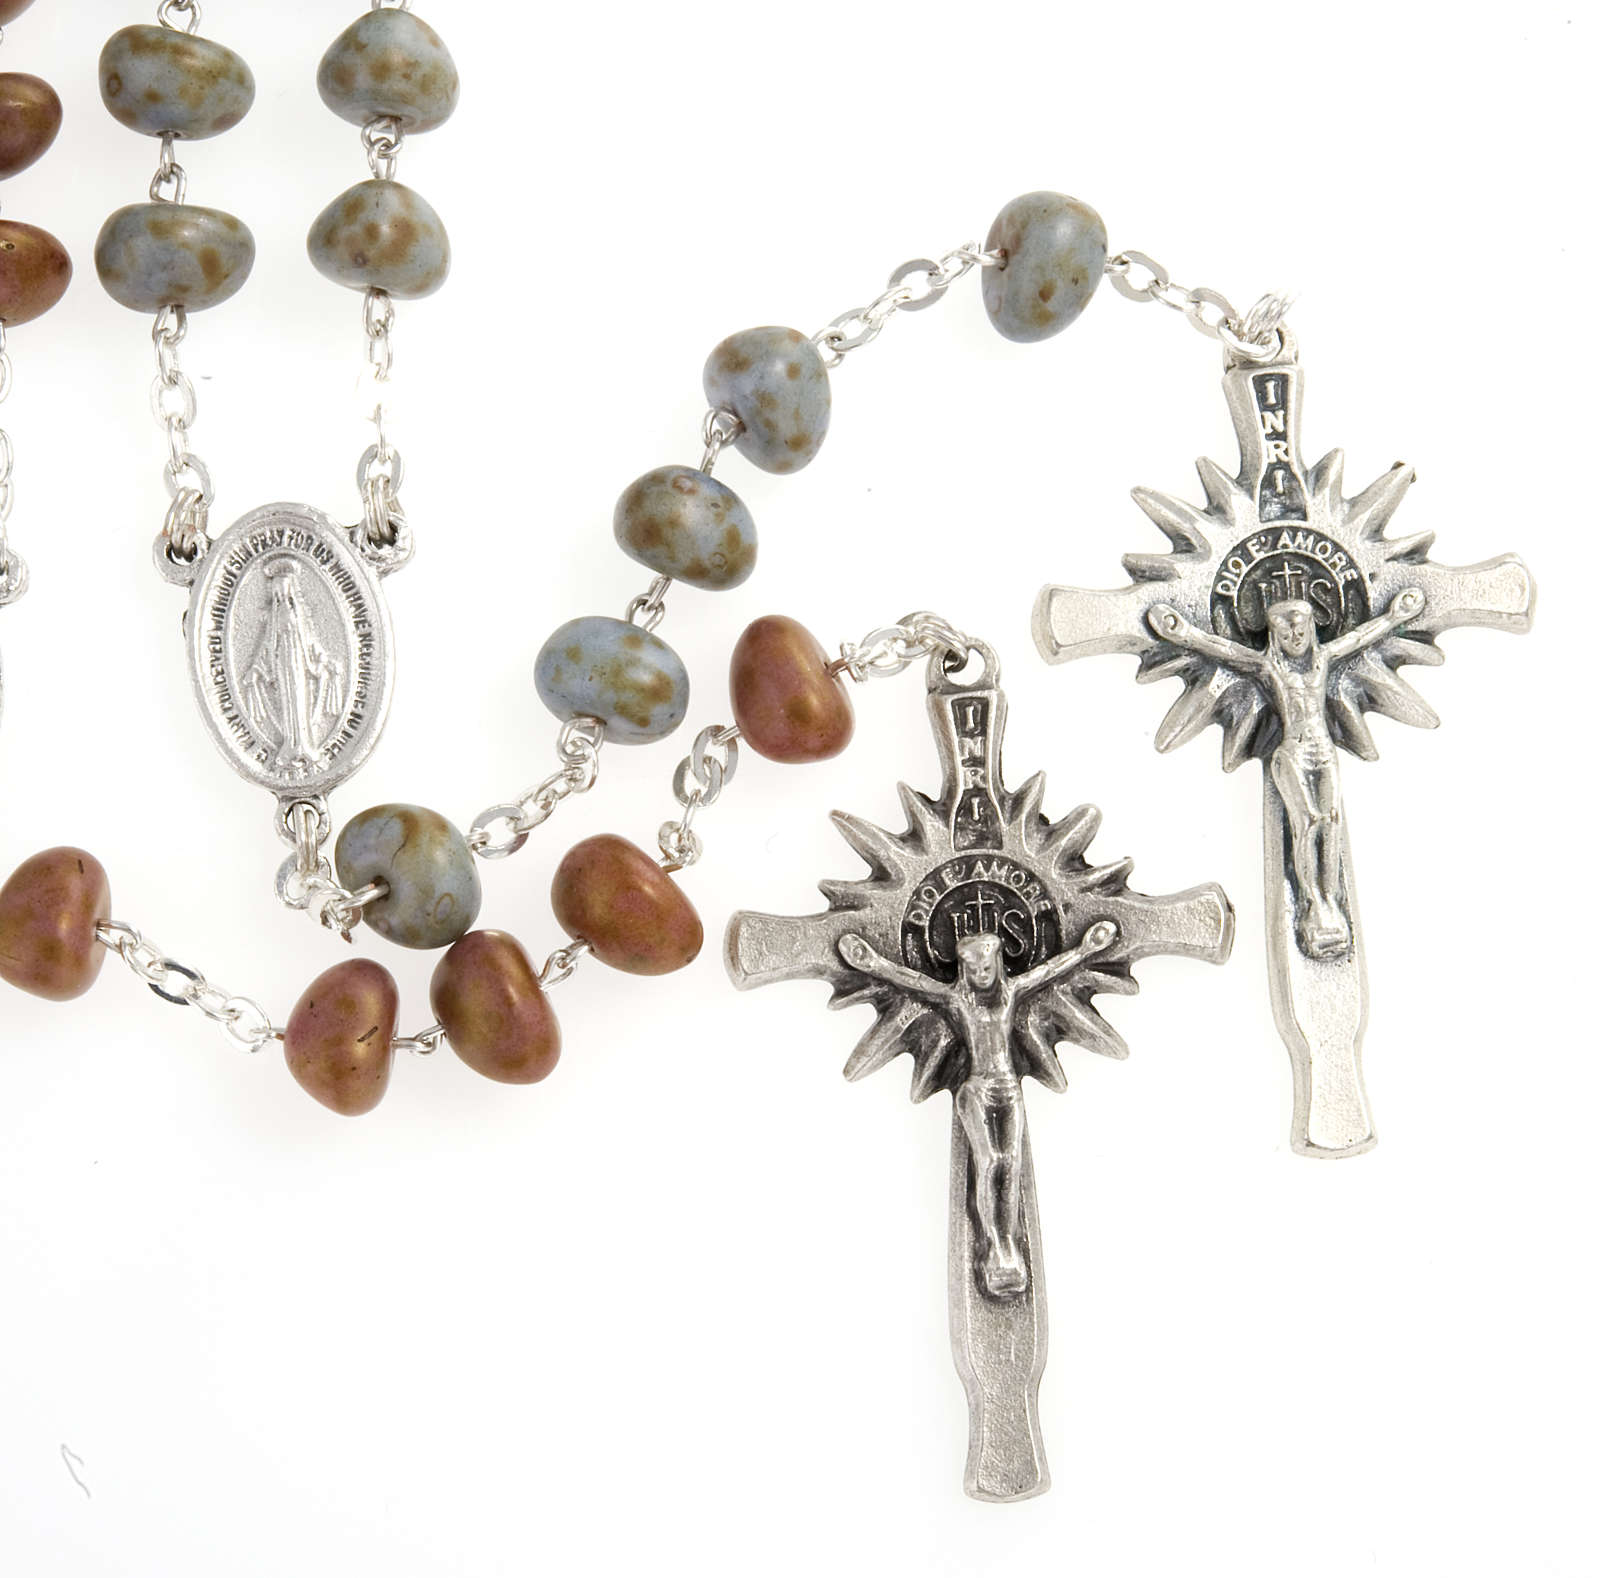 Stone-like rosary beads, silver metal, 9mm 4